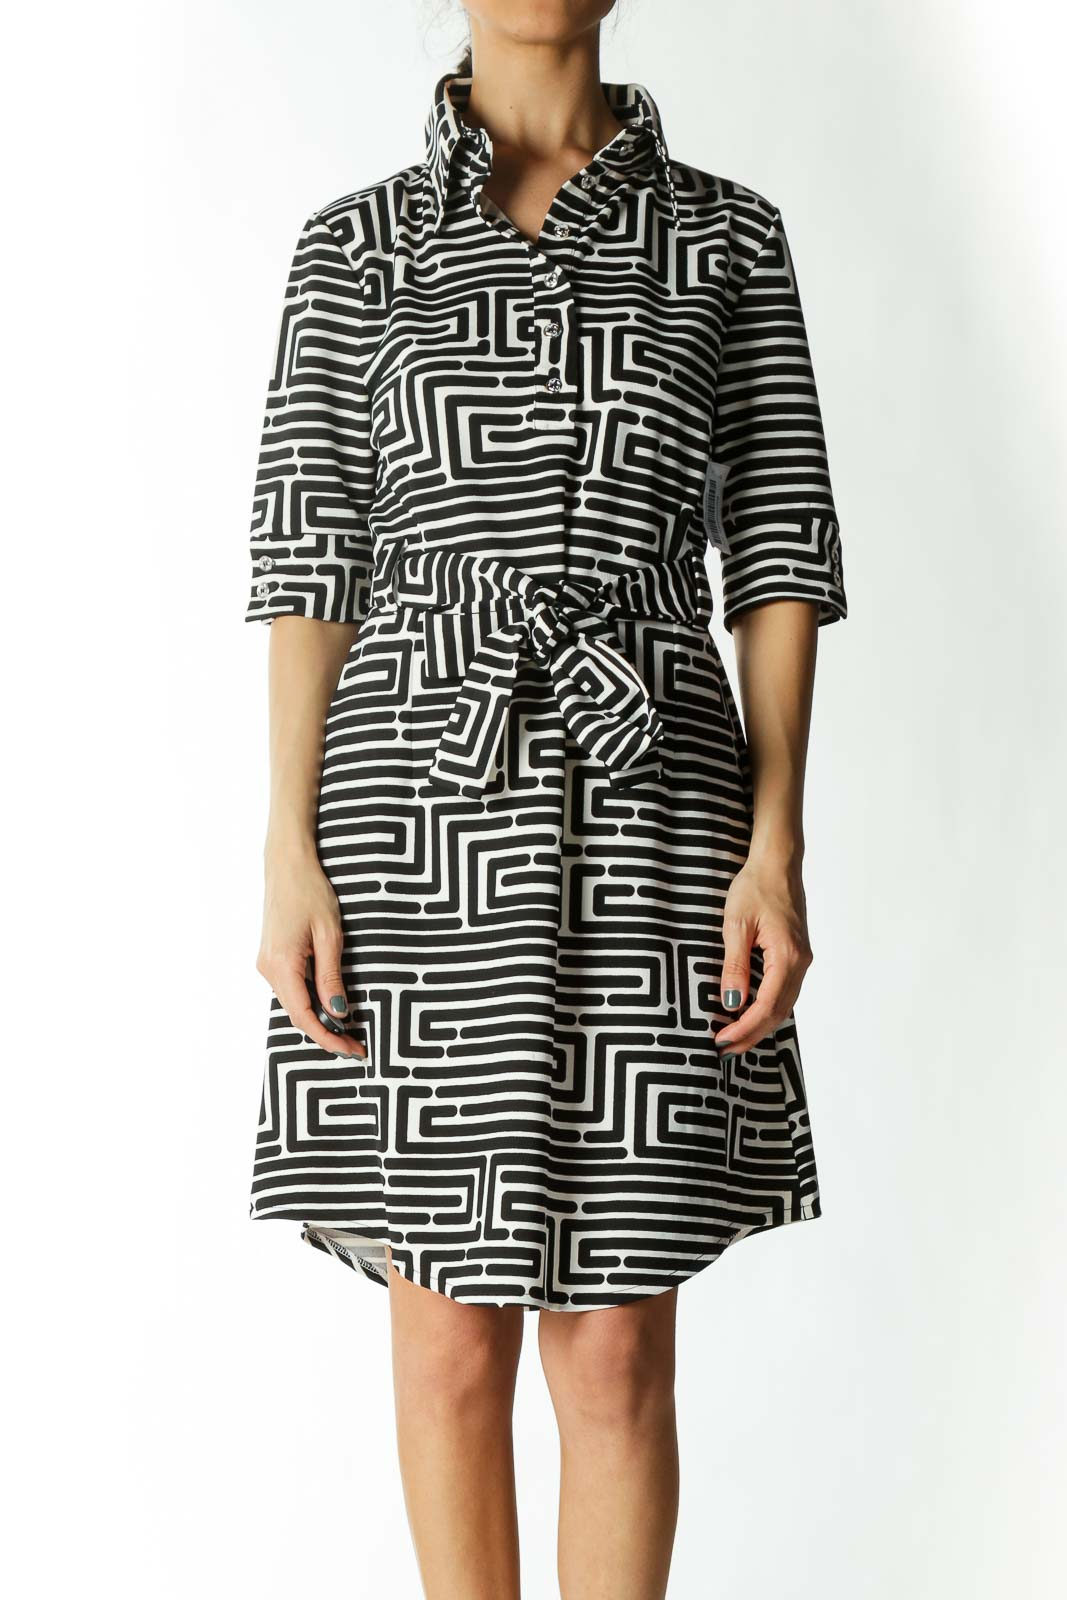 Black and White Striped Shirt Dress with Belt